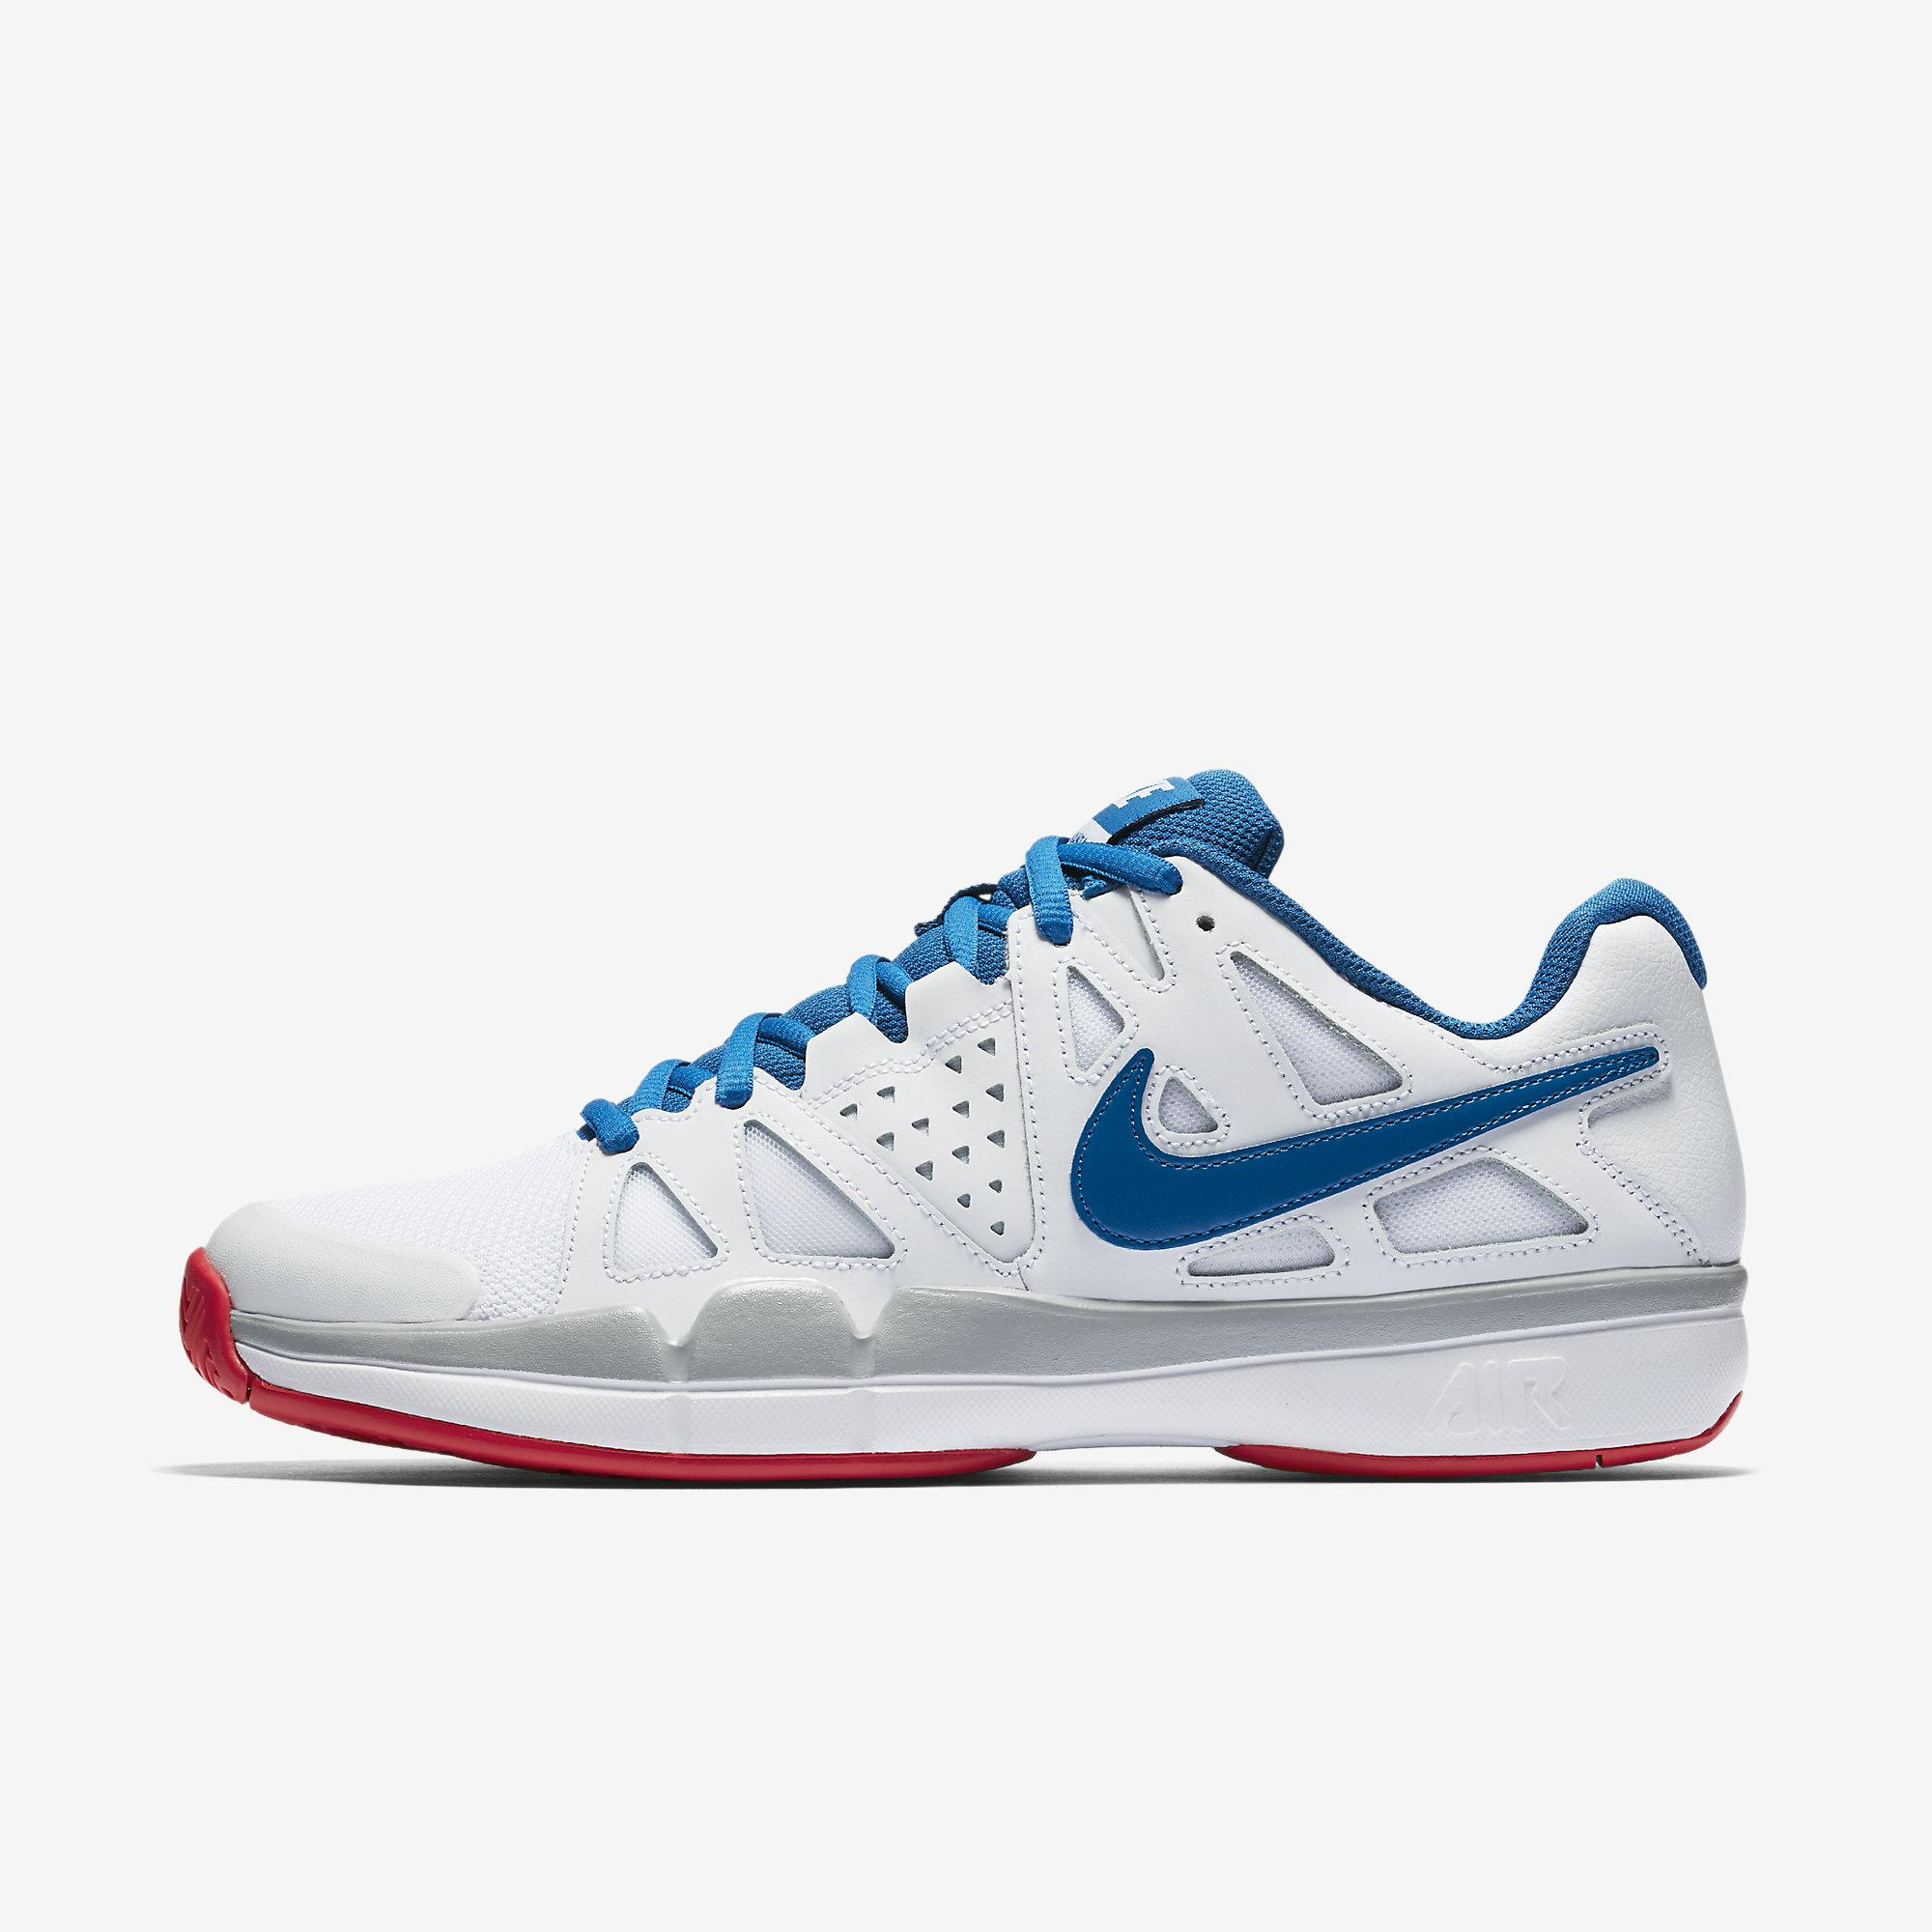 Nike Mens Air Vapor Advantage Tennis Shoes - White Blue Red - Tennisnuts.com e14be7af6